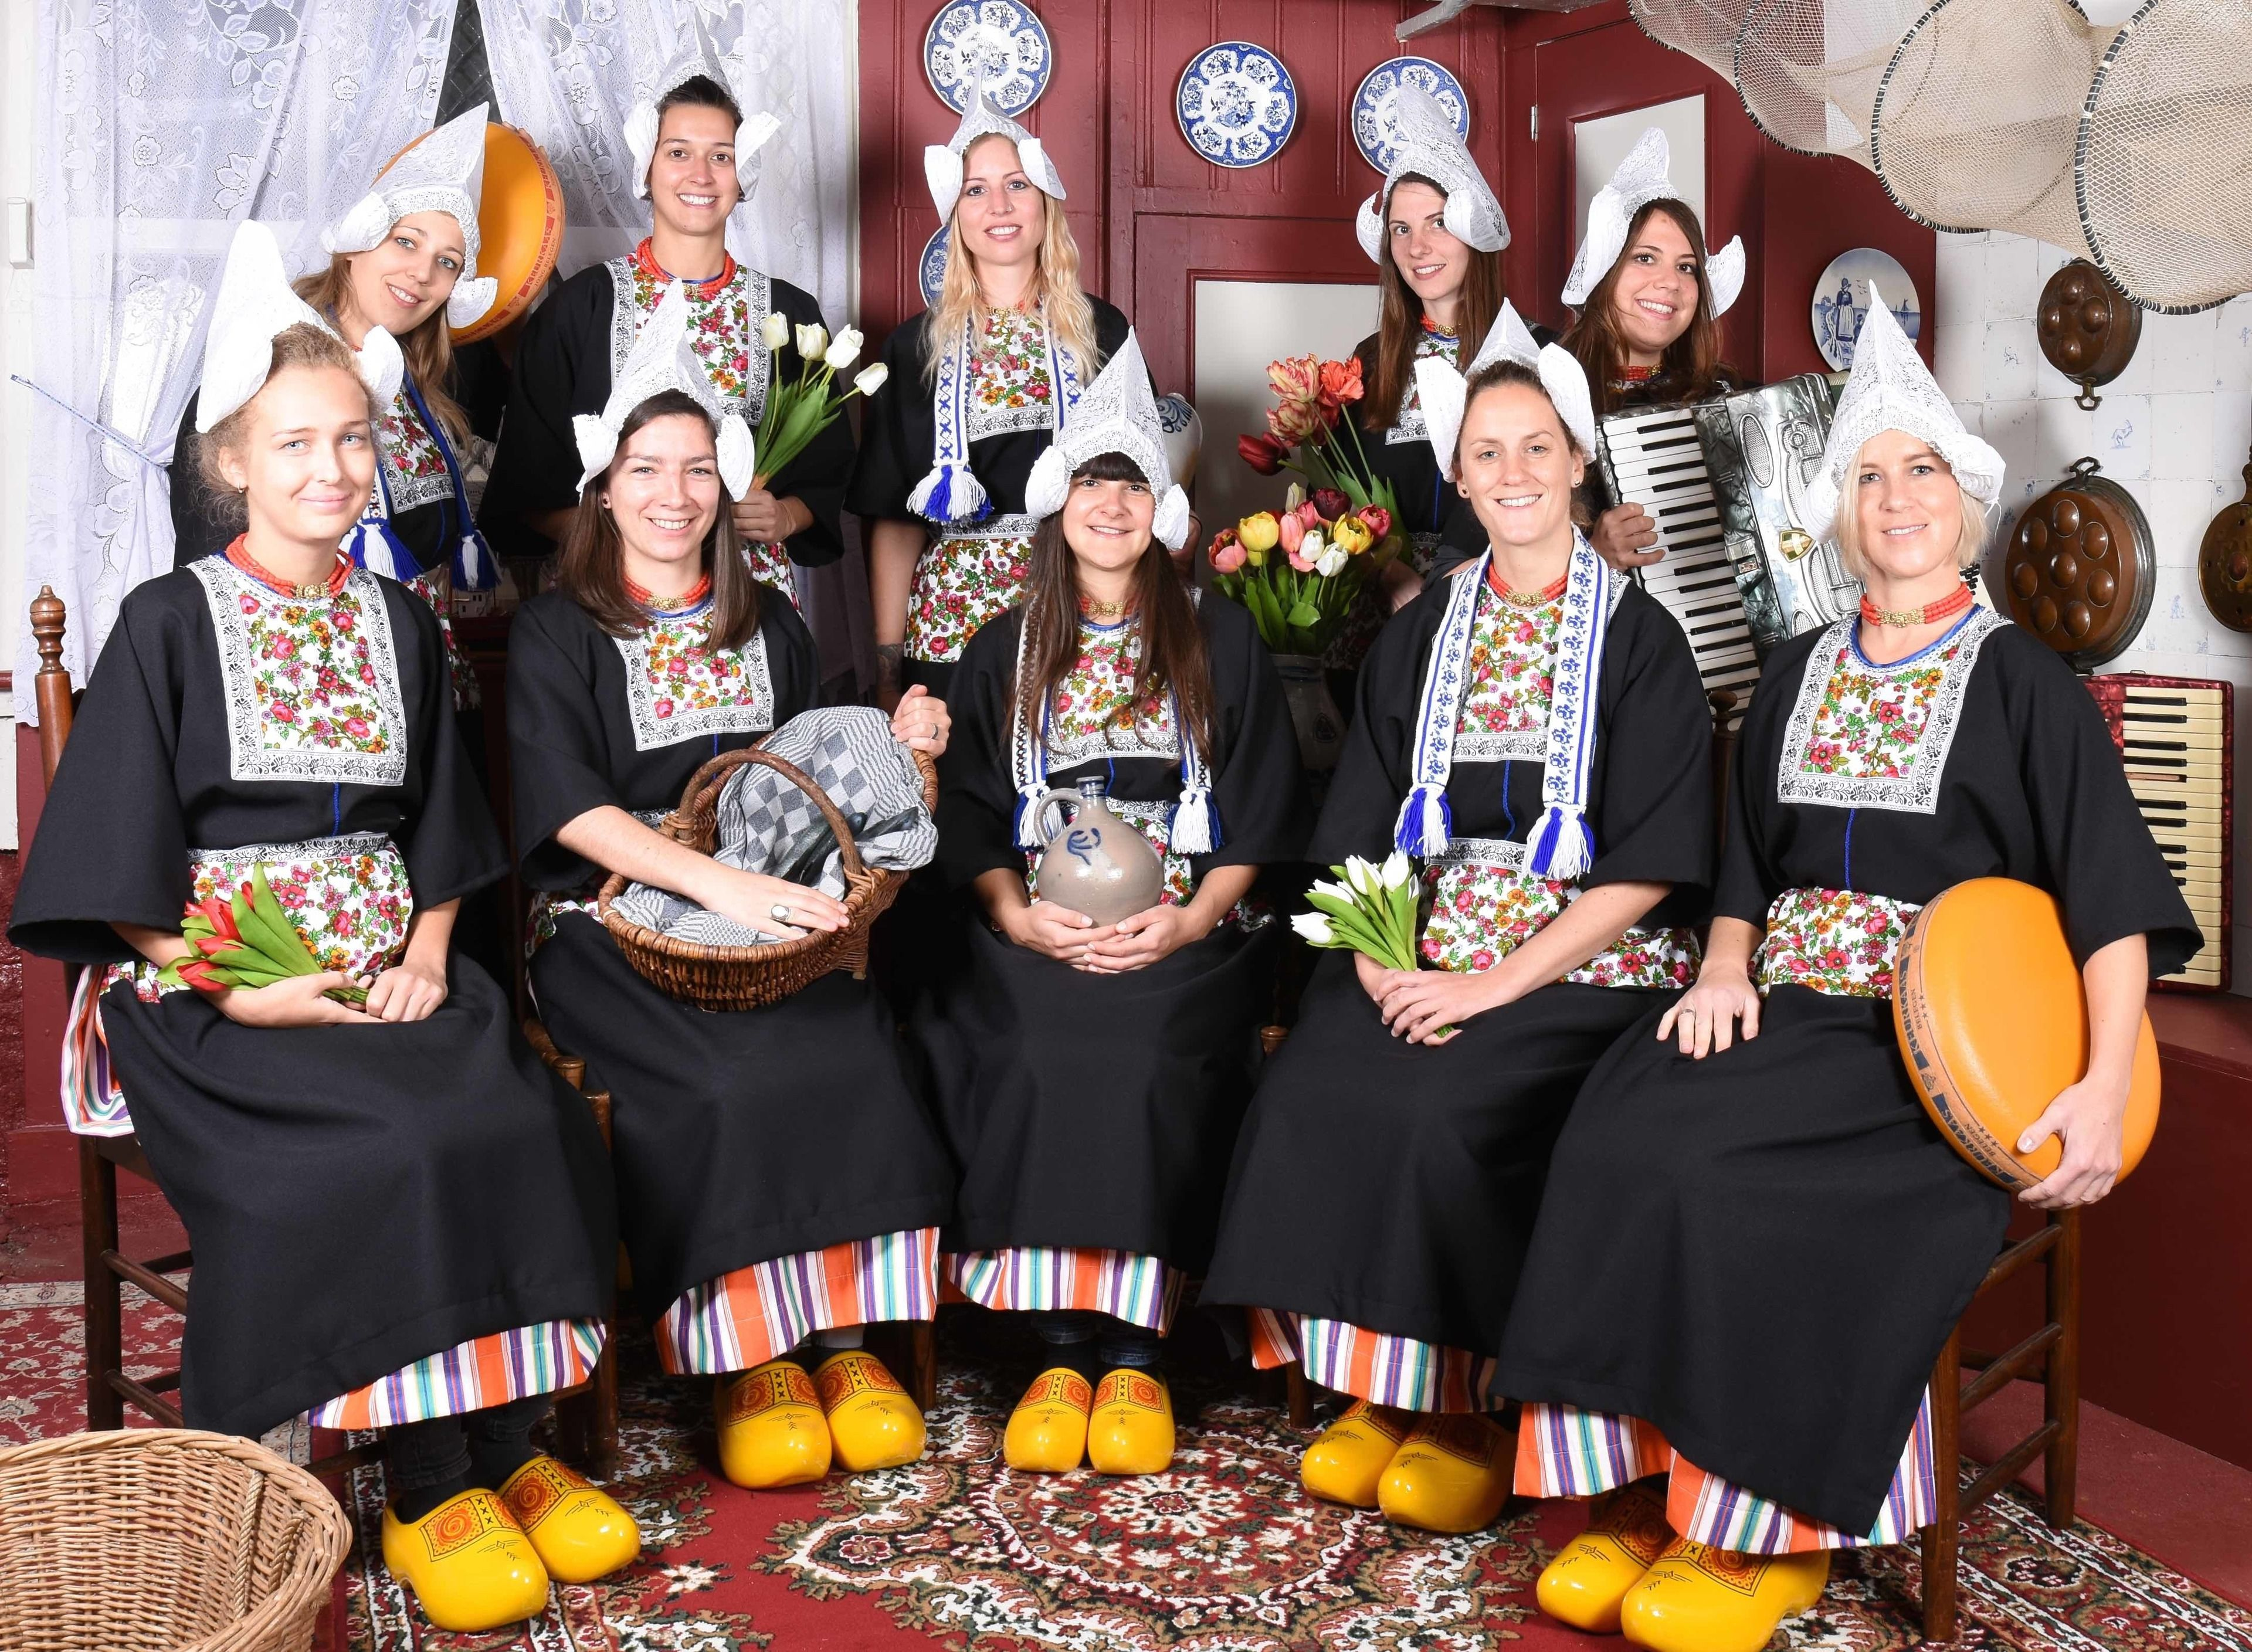 Ten Women in a group dressed in traditional clothing at the Dutch Costume Museum